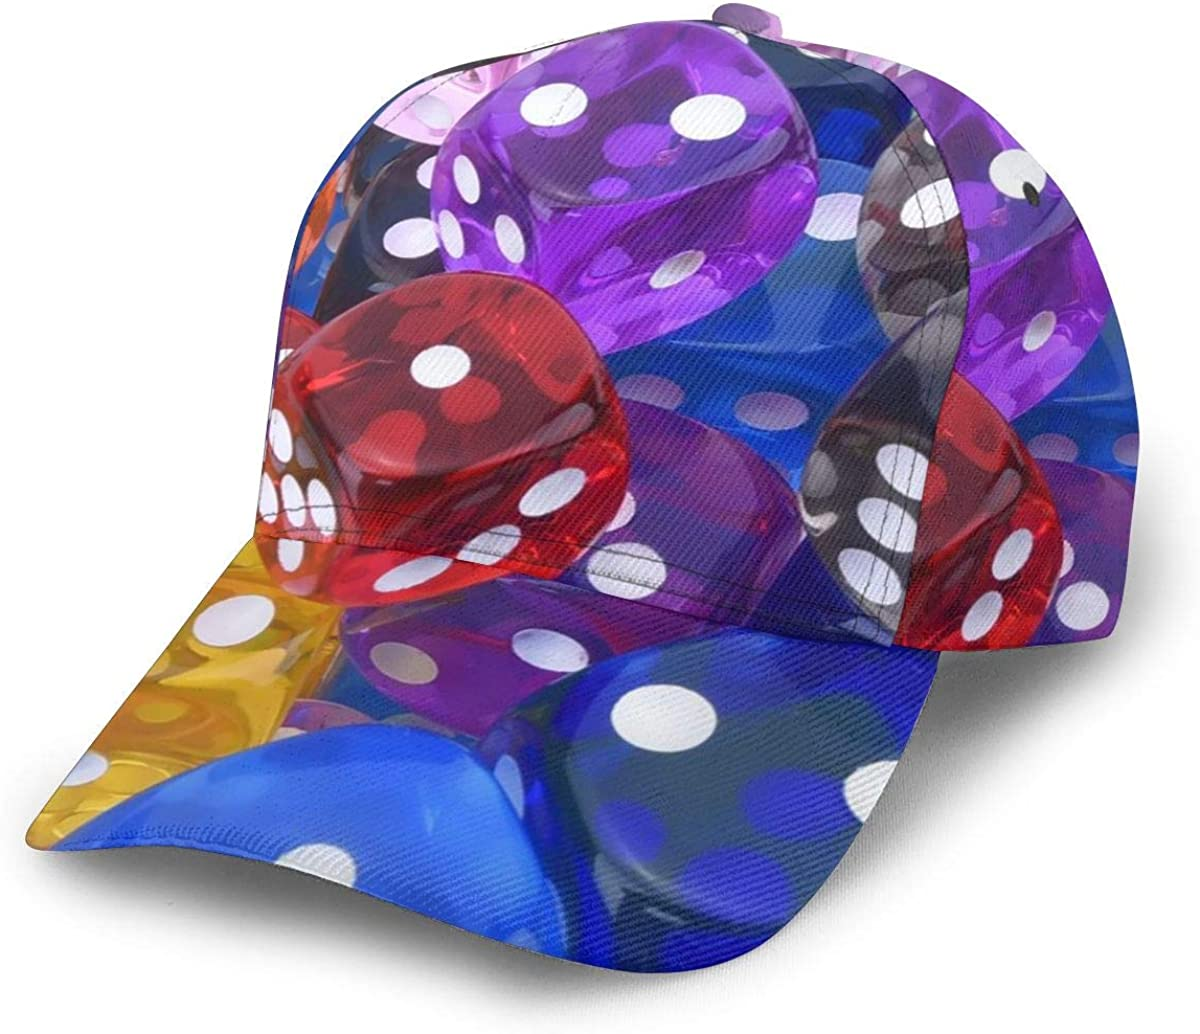 Baseball Cap 6-Sided Games Dice Fixed price for sale Cheap SALE Start Set Dad Caps Circular Print Flat